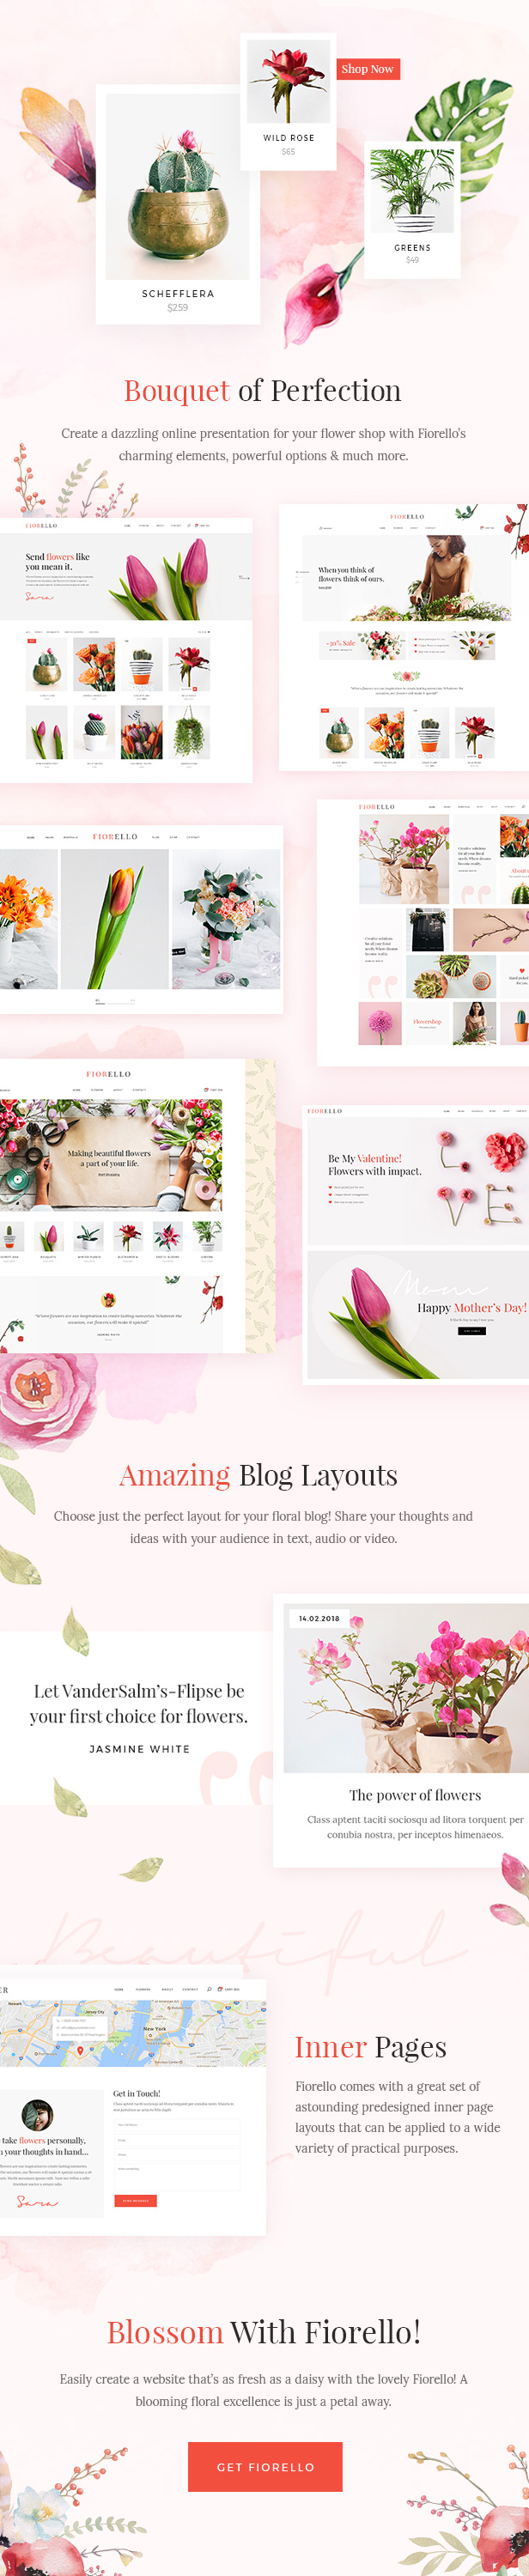 WordPress theme Fiorello - A Flower Shop and Florist WooCommerce Theme (WooCommerce)